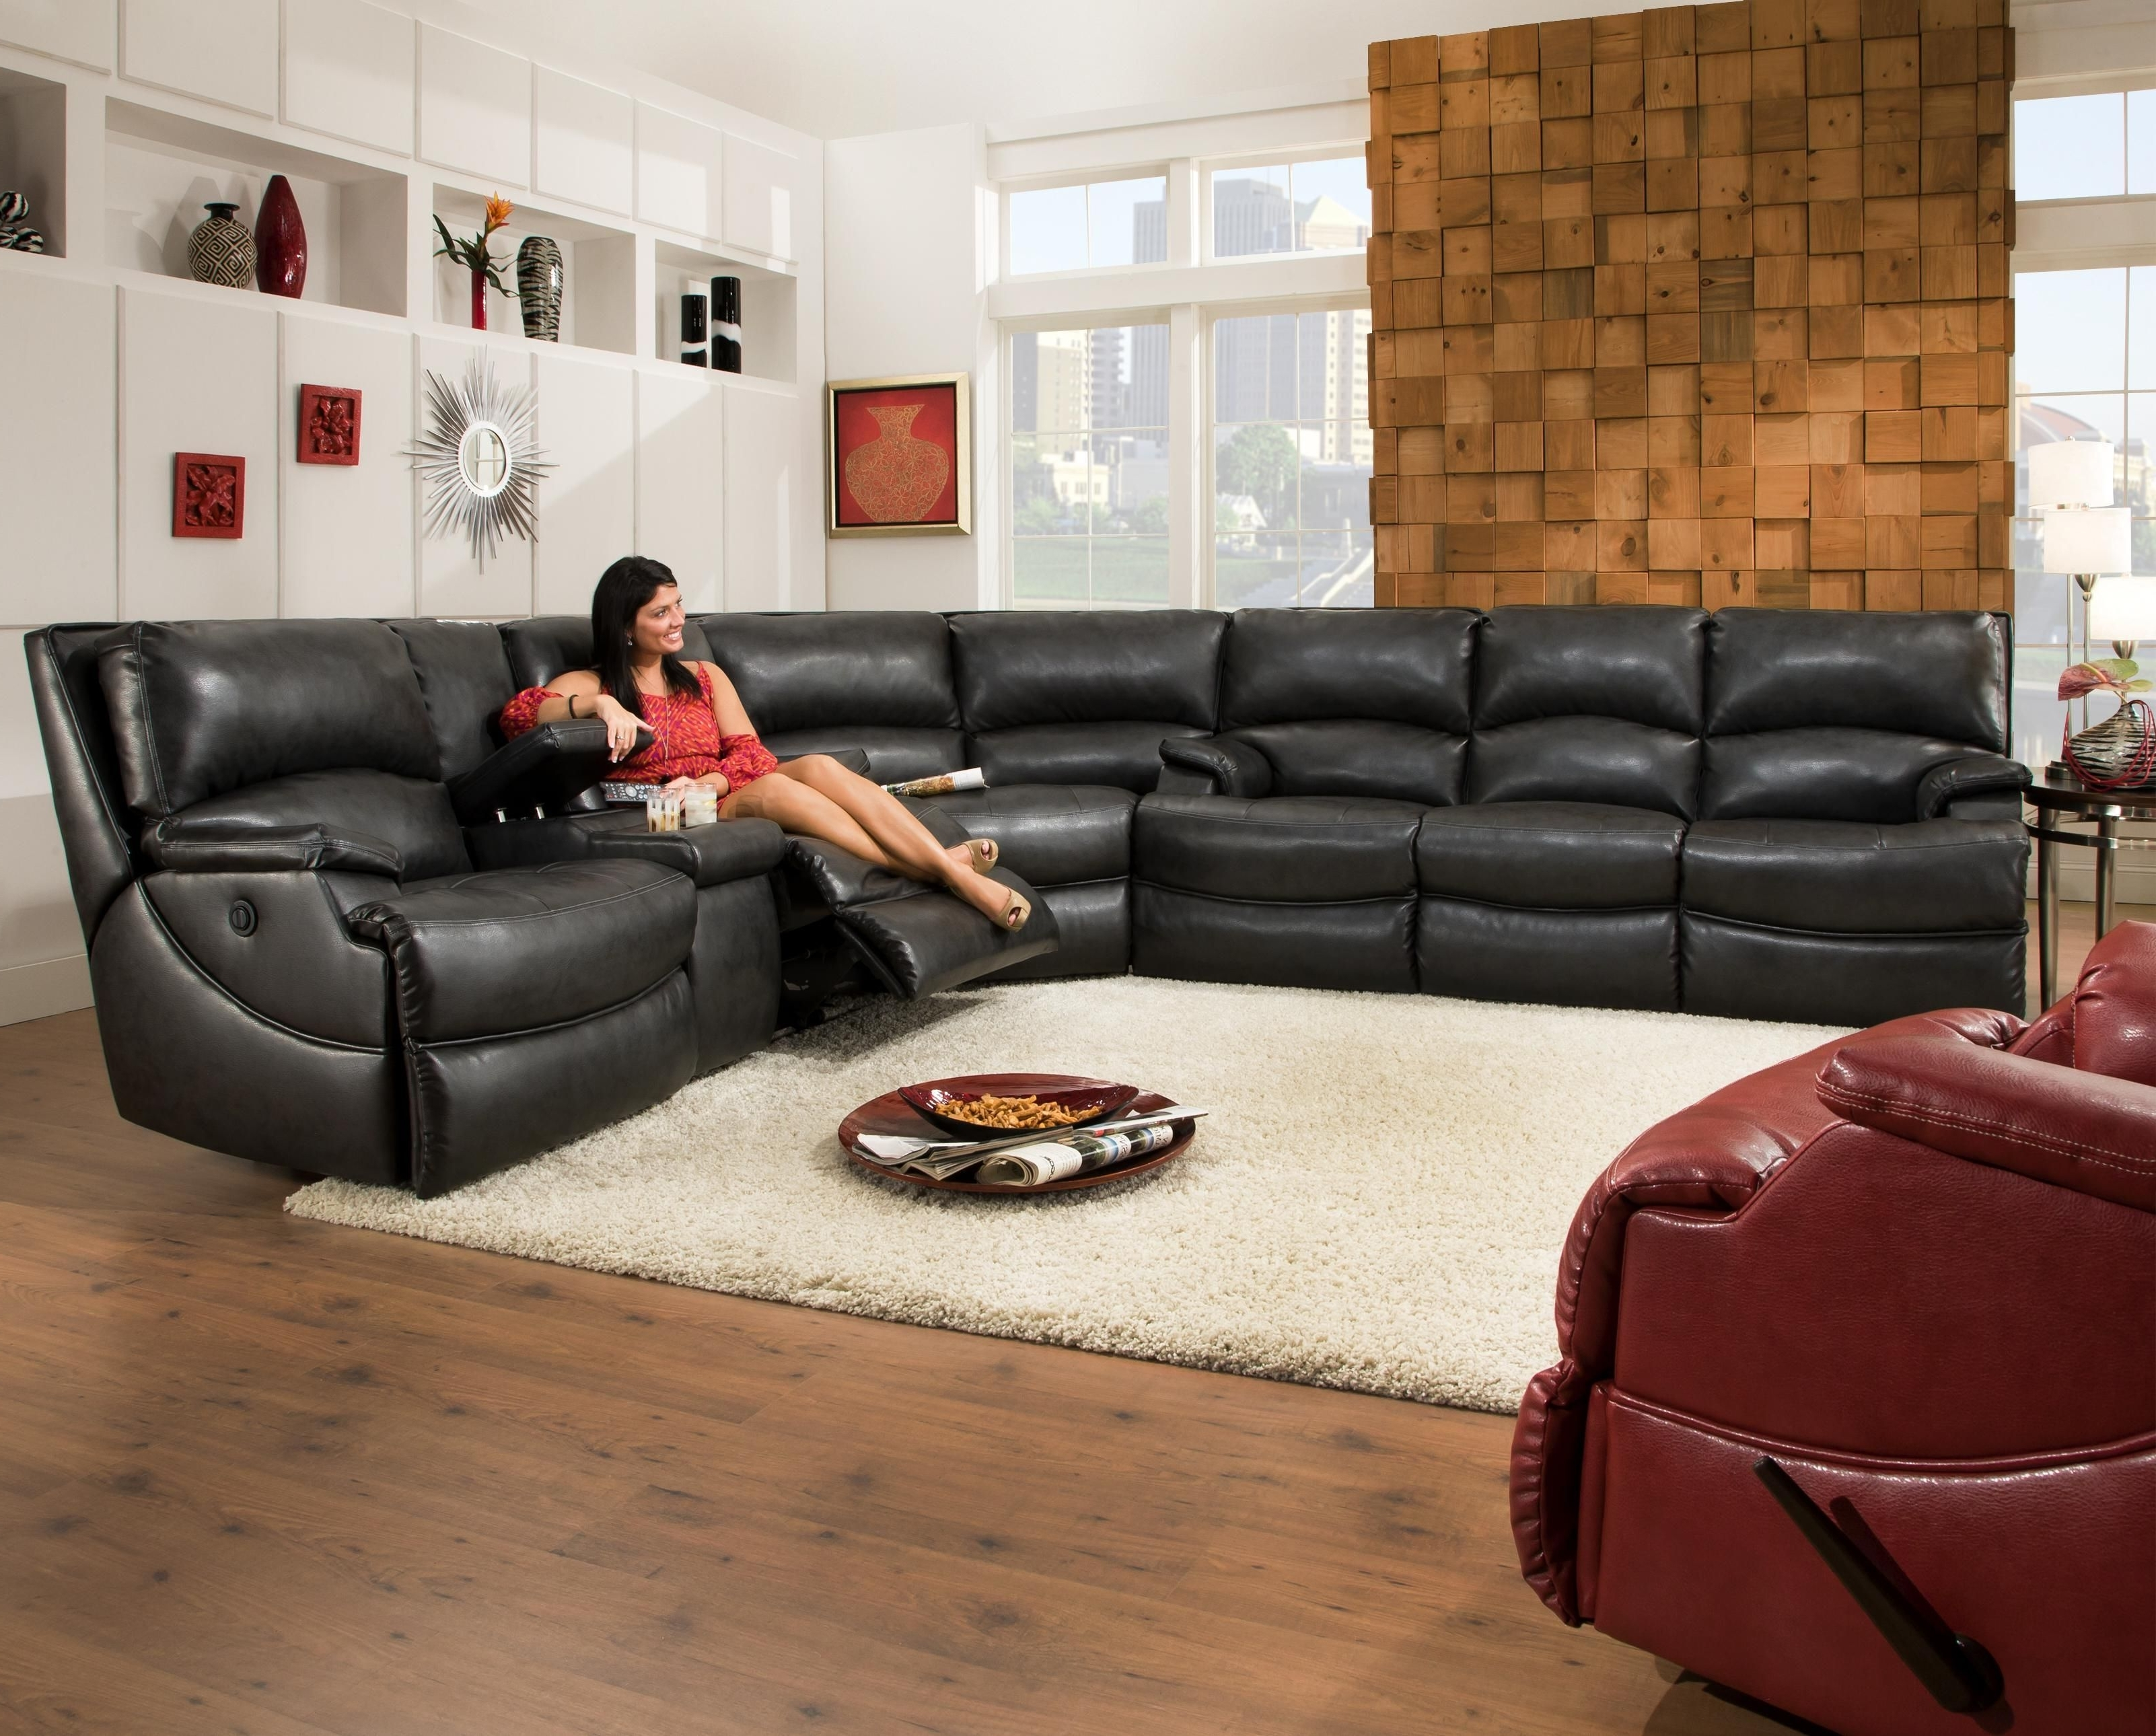 Most Recent Southern Motion Shazam Six Seat Reclining Sectional Sofa With Cup With Regard To Sectional Sofas With Consoles (View 7 of 15)